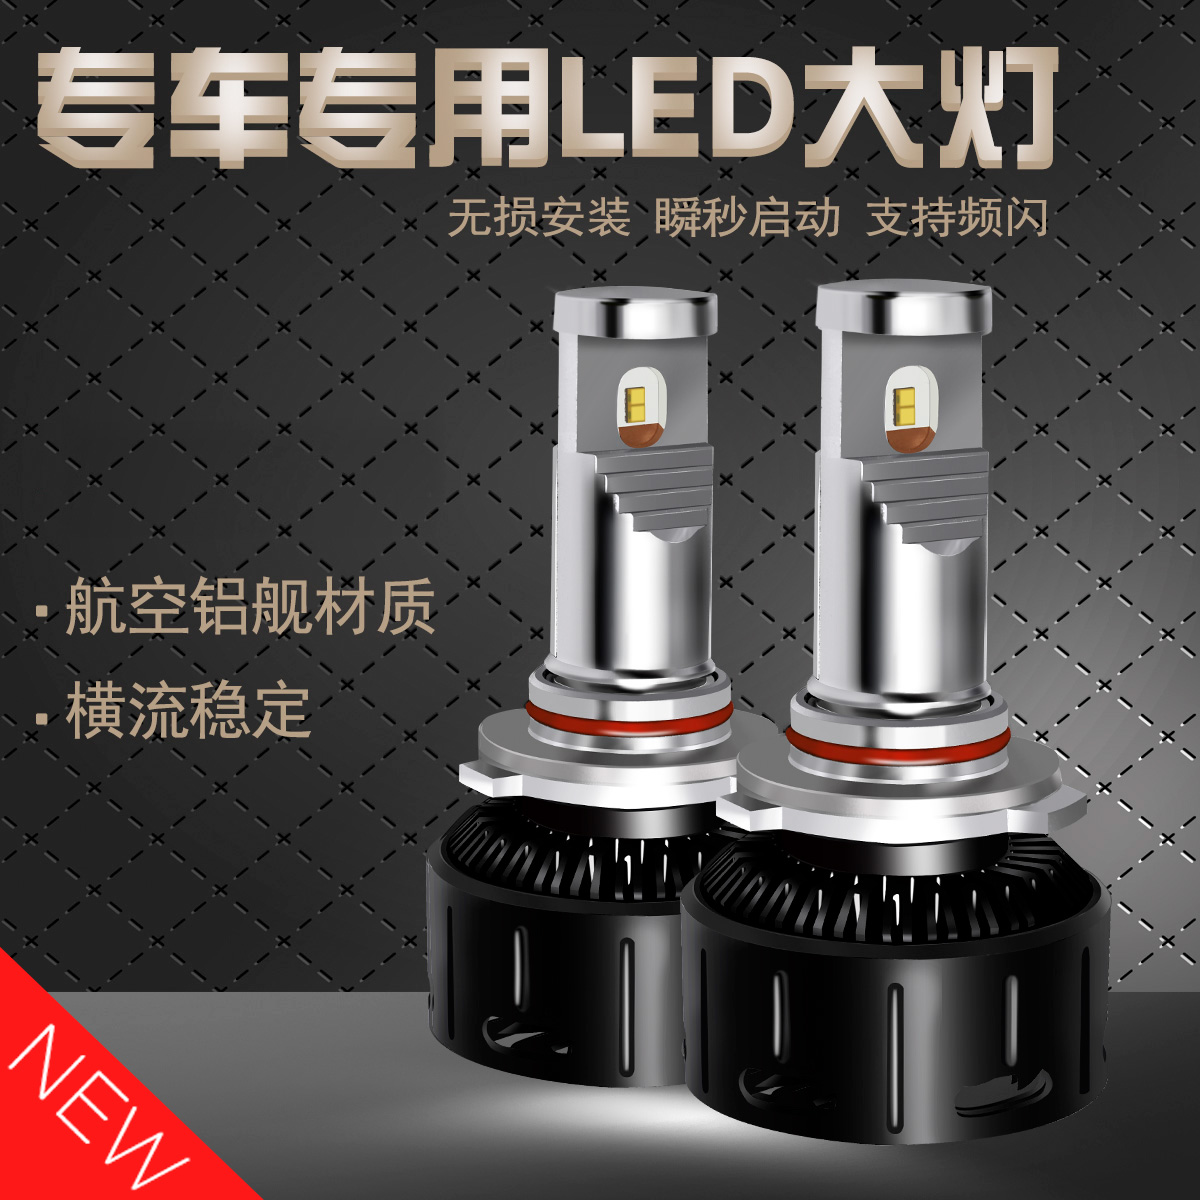 Geely king kong brilliant dedicated distance light led headlamps dedicated distance light led bulb led car headlights shipping